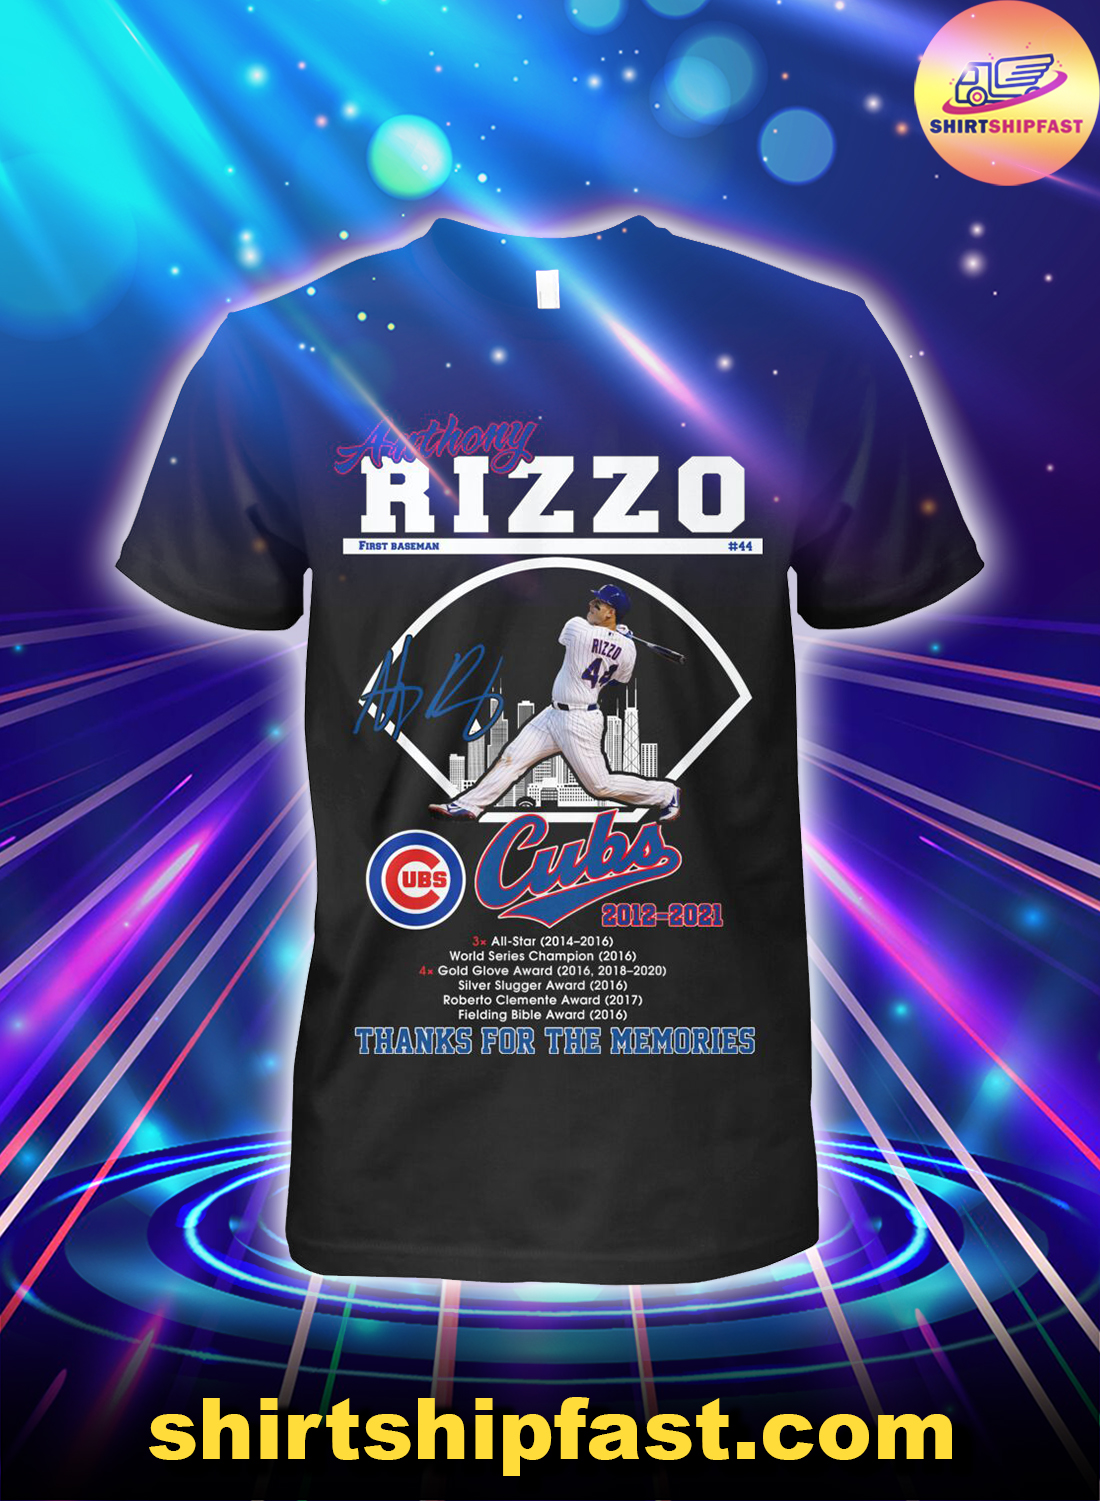 Anthony Rizzo first baseman 44 Chicago Cubs 2012 2021 thanks for the memories shirt